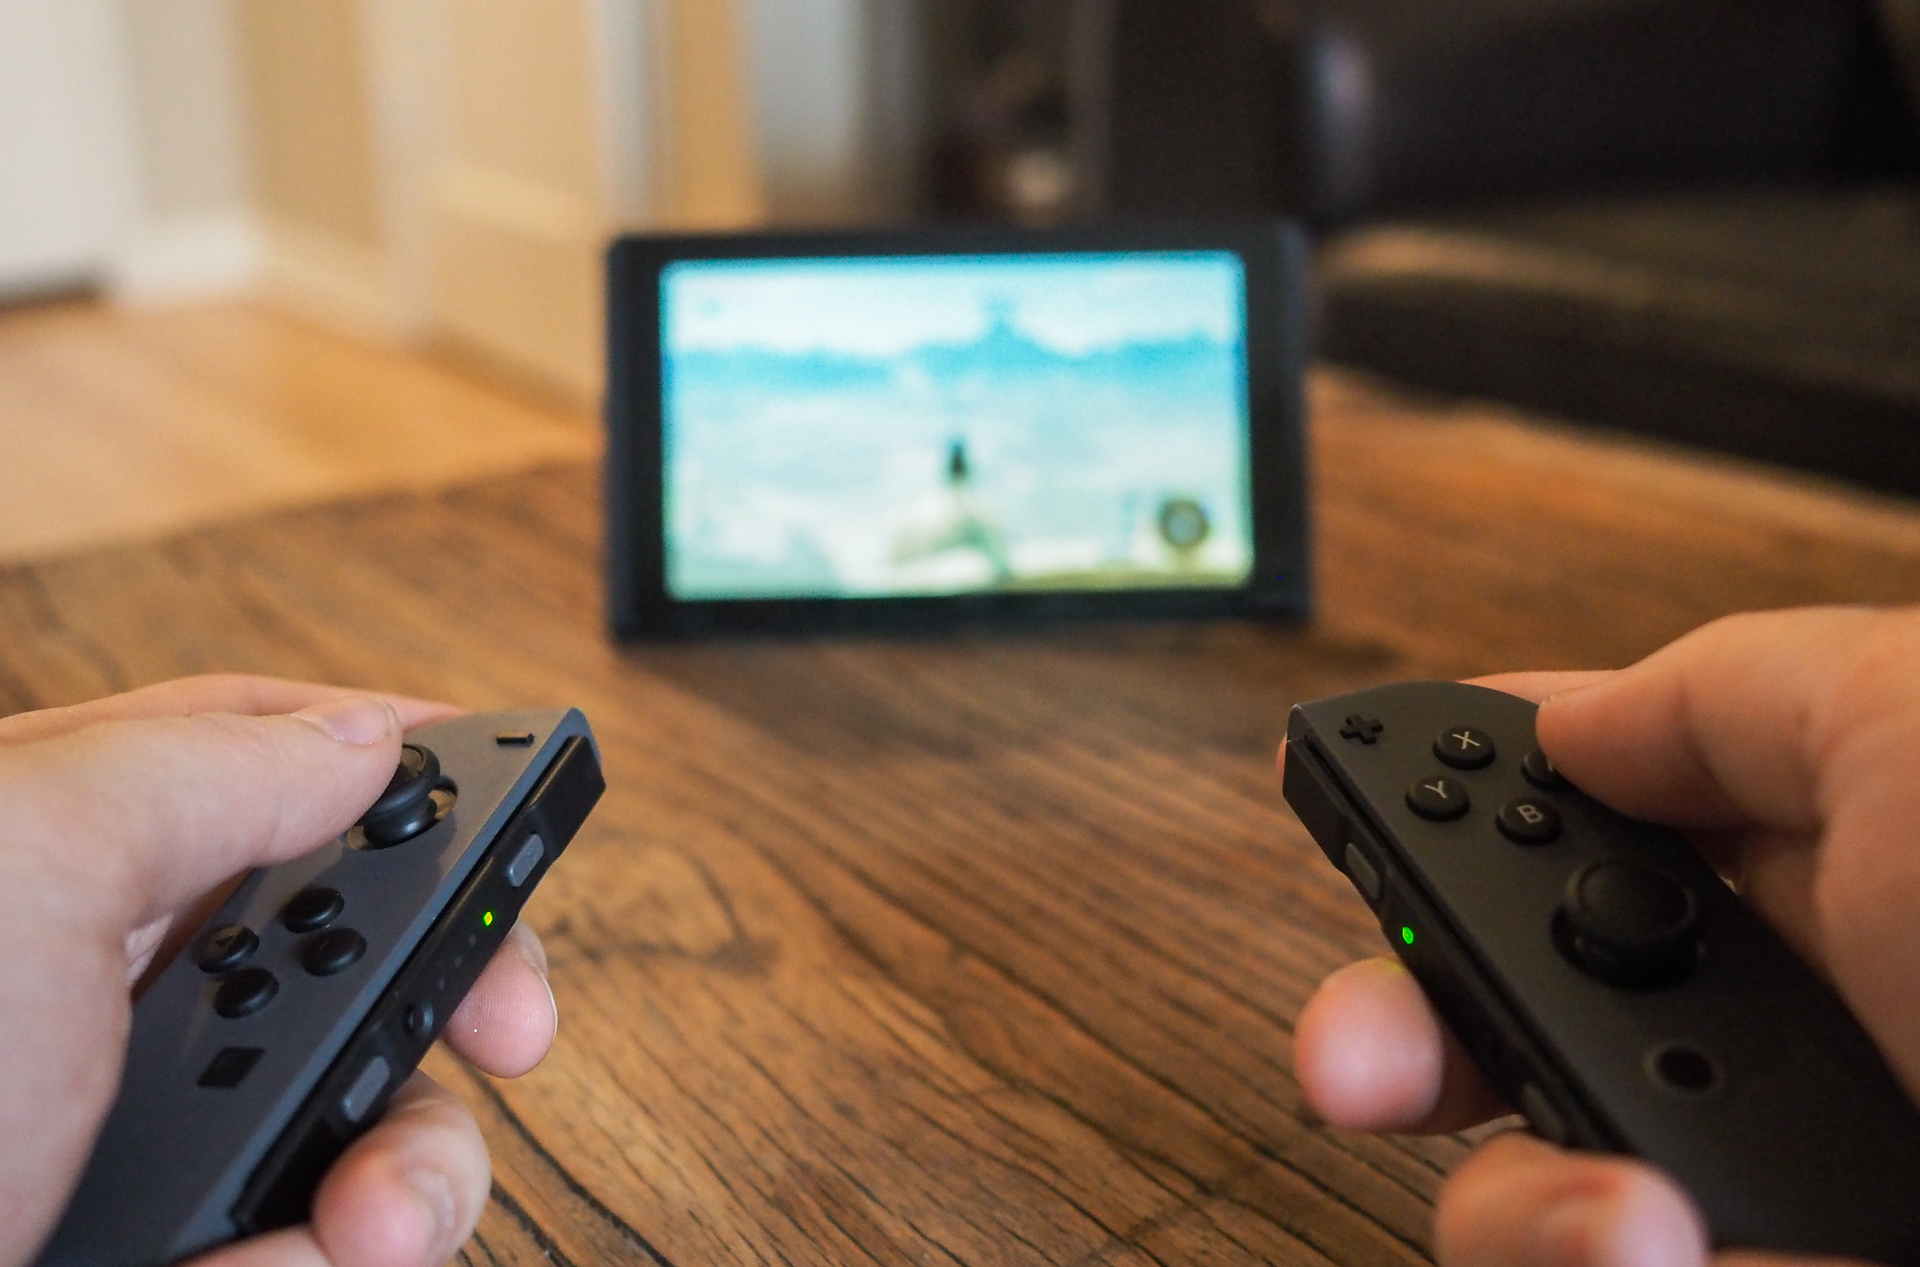 Nvidia Tegra X1 flaw allows all Nintendo Switch consoles to be hacked